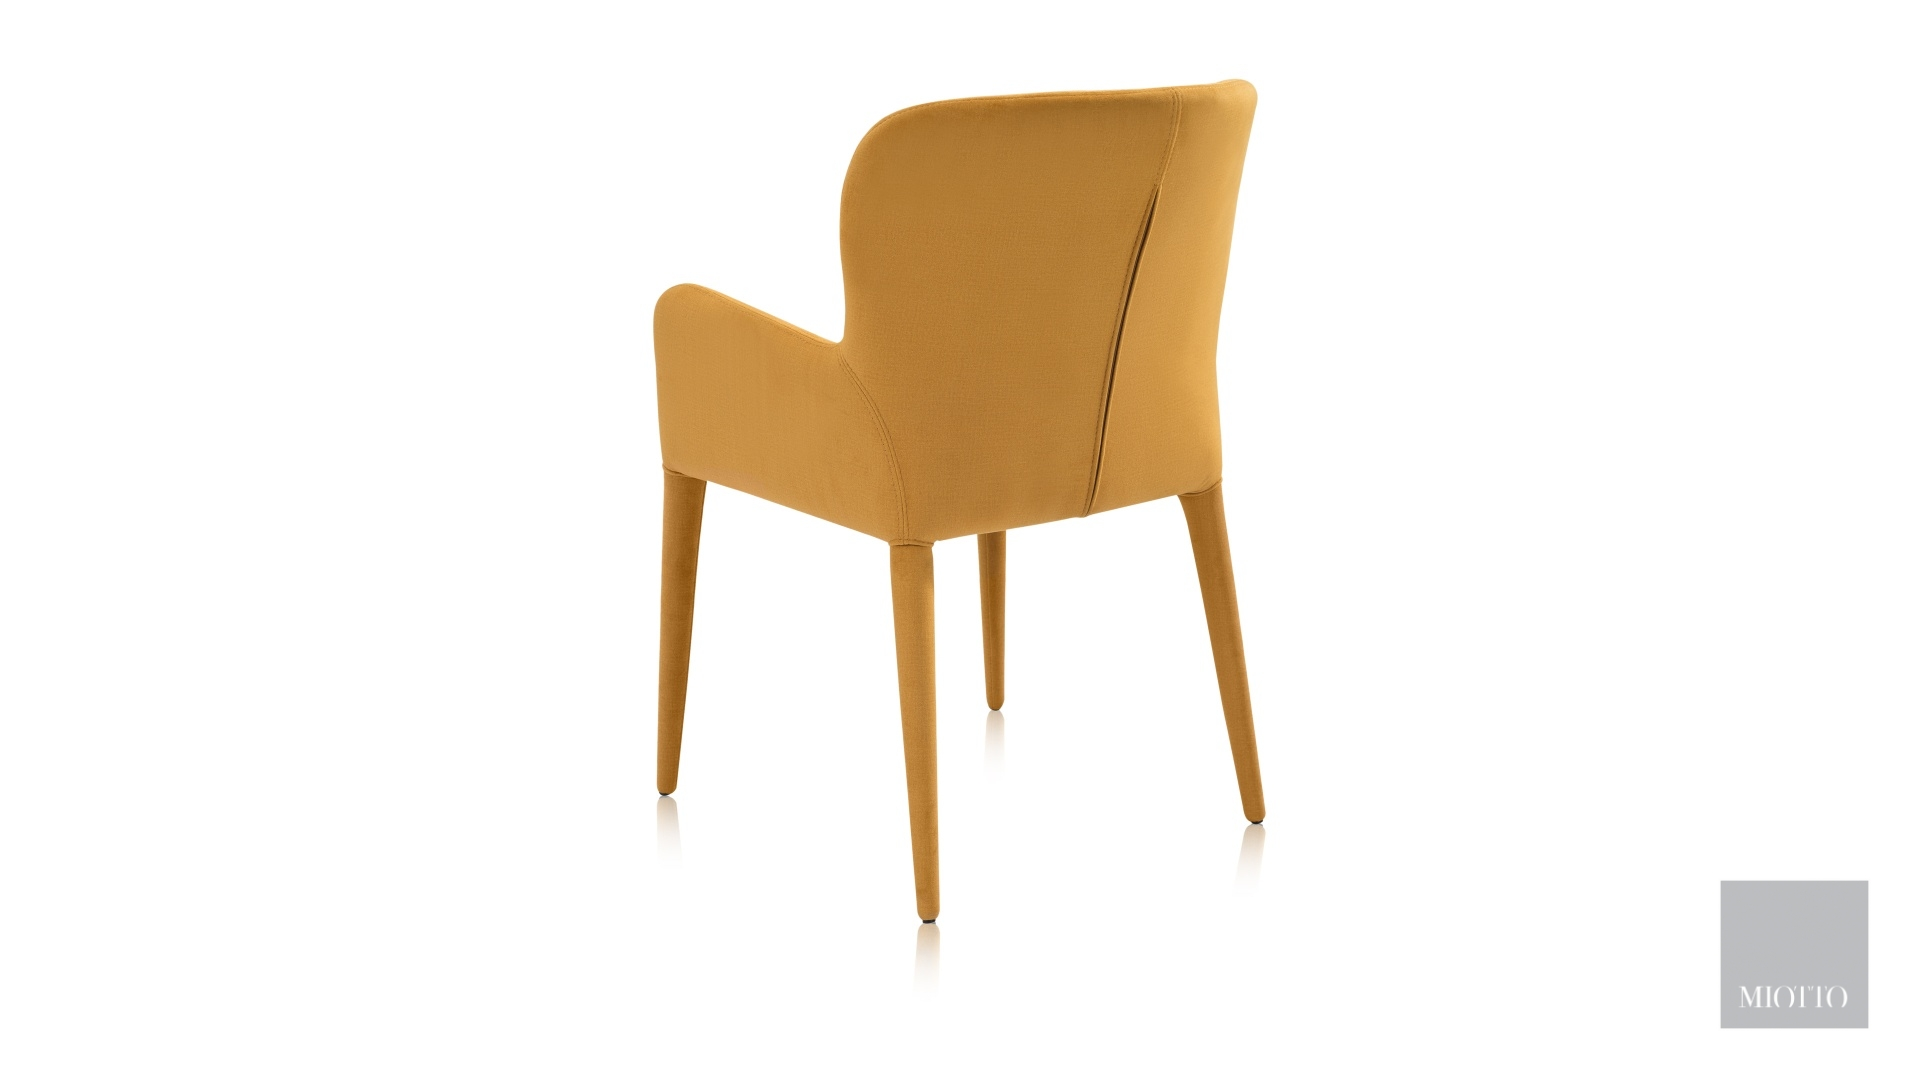 miotto_Aviano dining armchair yellow back miotto furniture